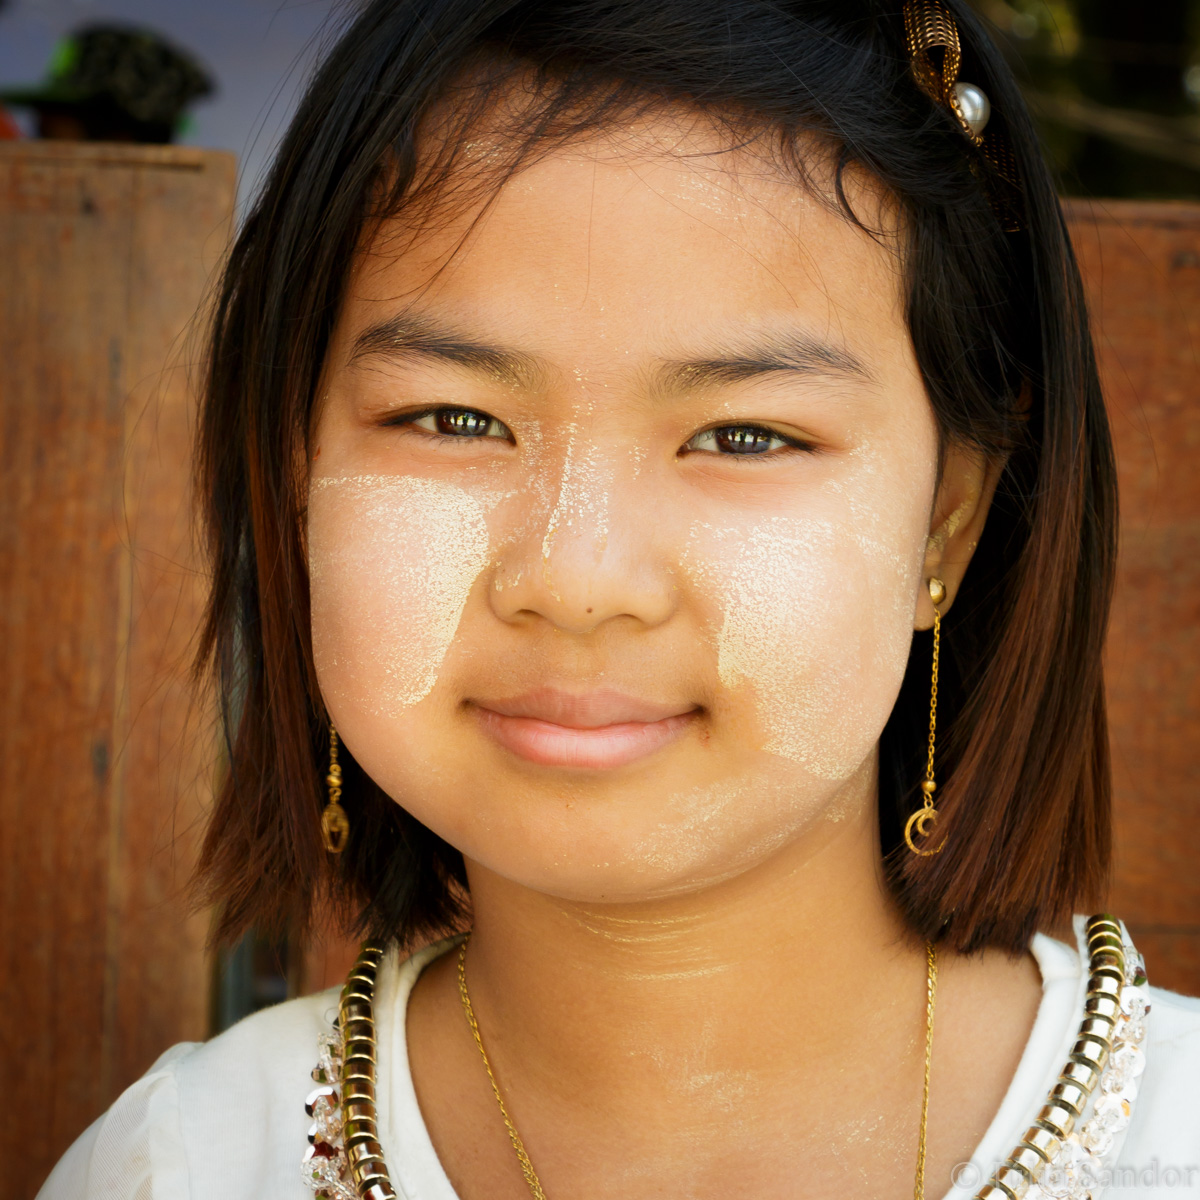 Faces of Asia: Burmese girl in Thanaka make up